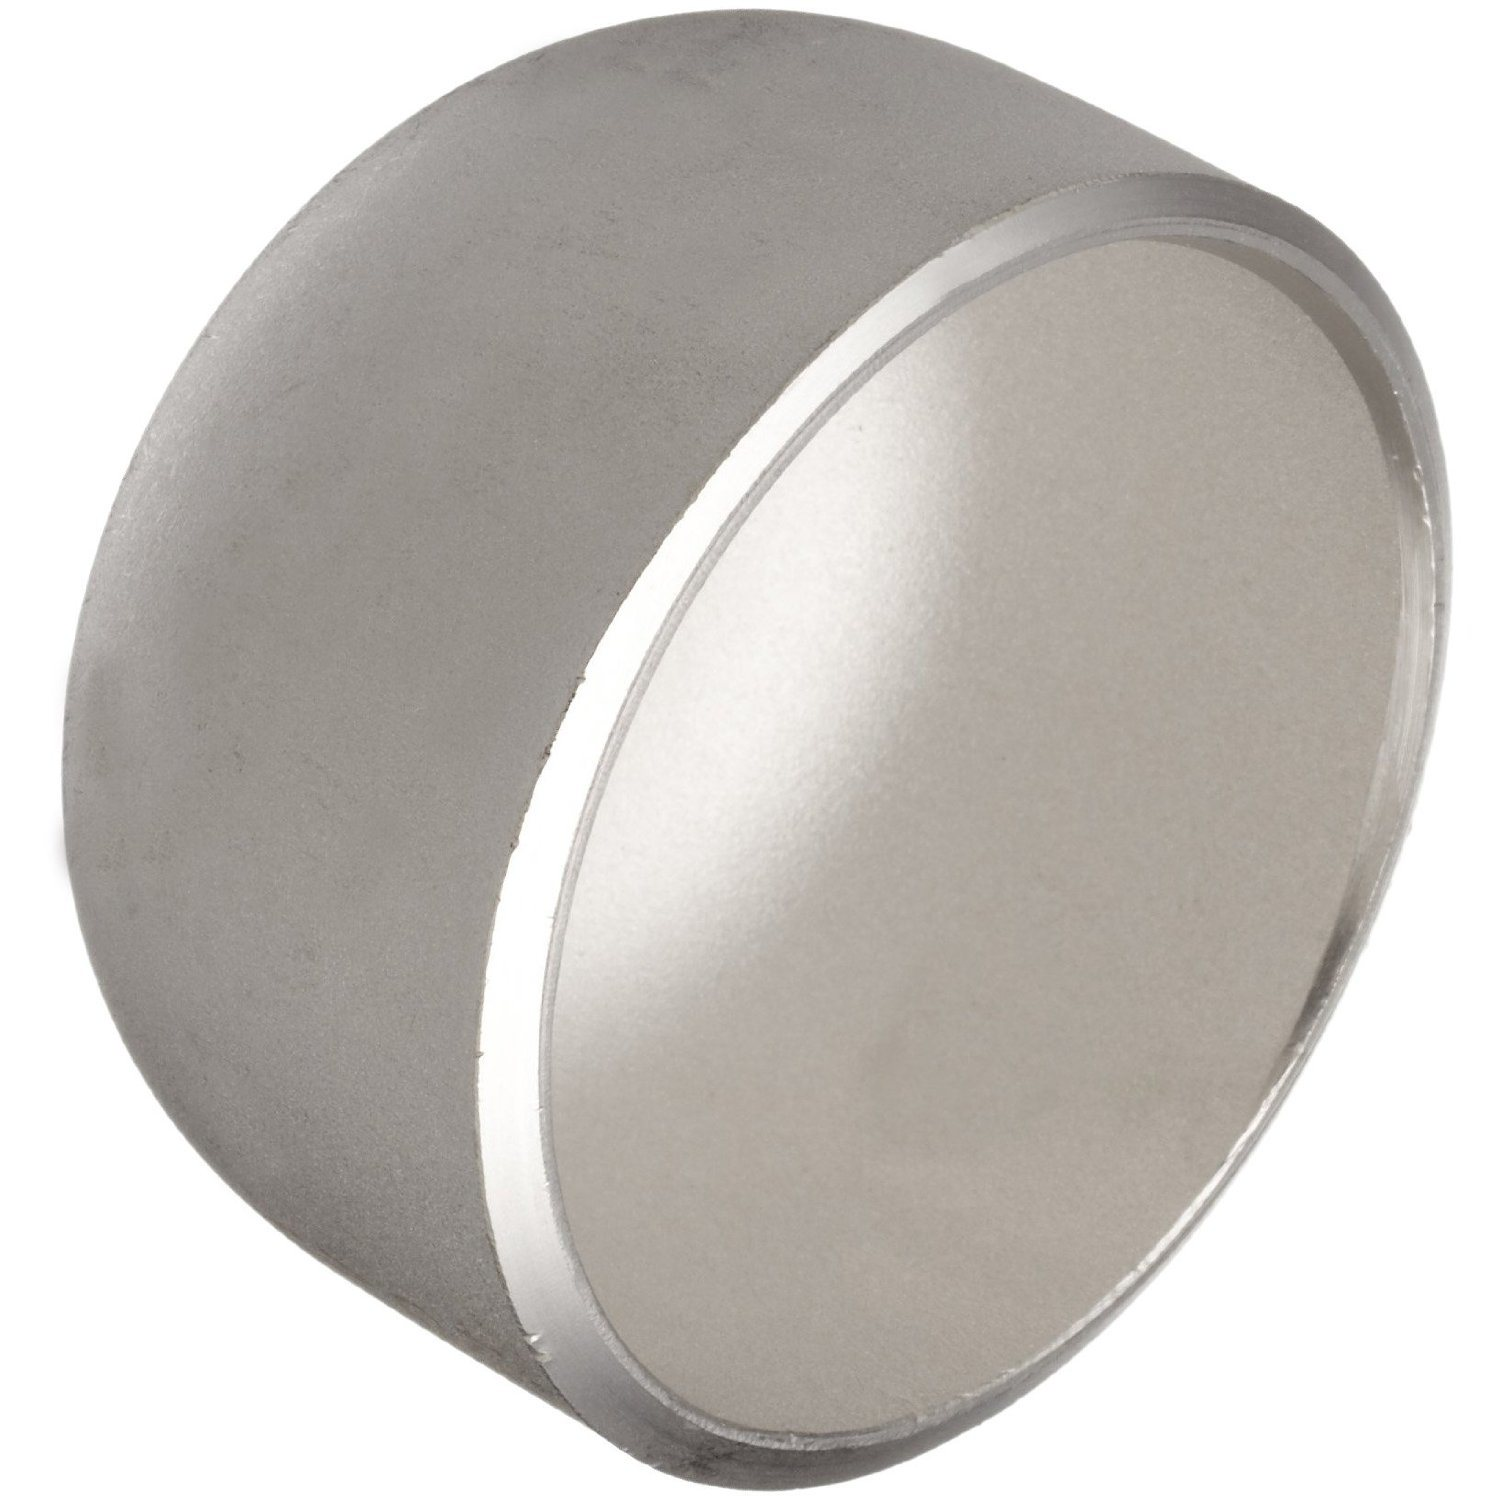 Stainless Steel 304/304L Butt Weld Pipe Fittings Cap